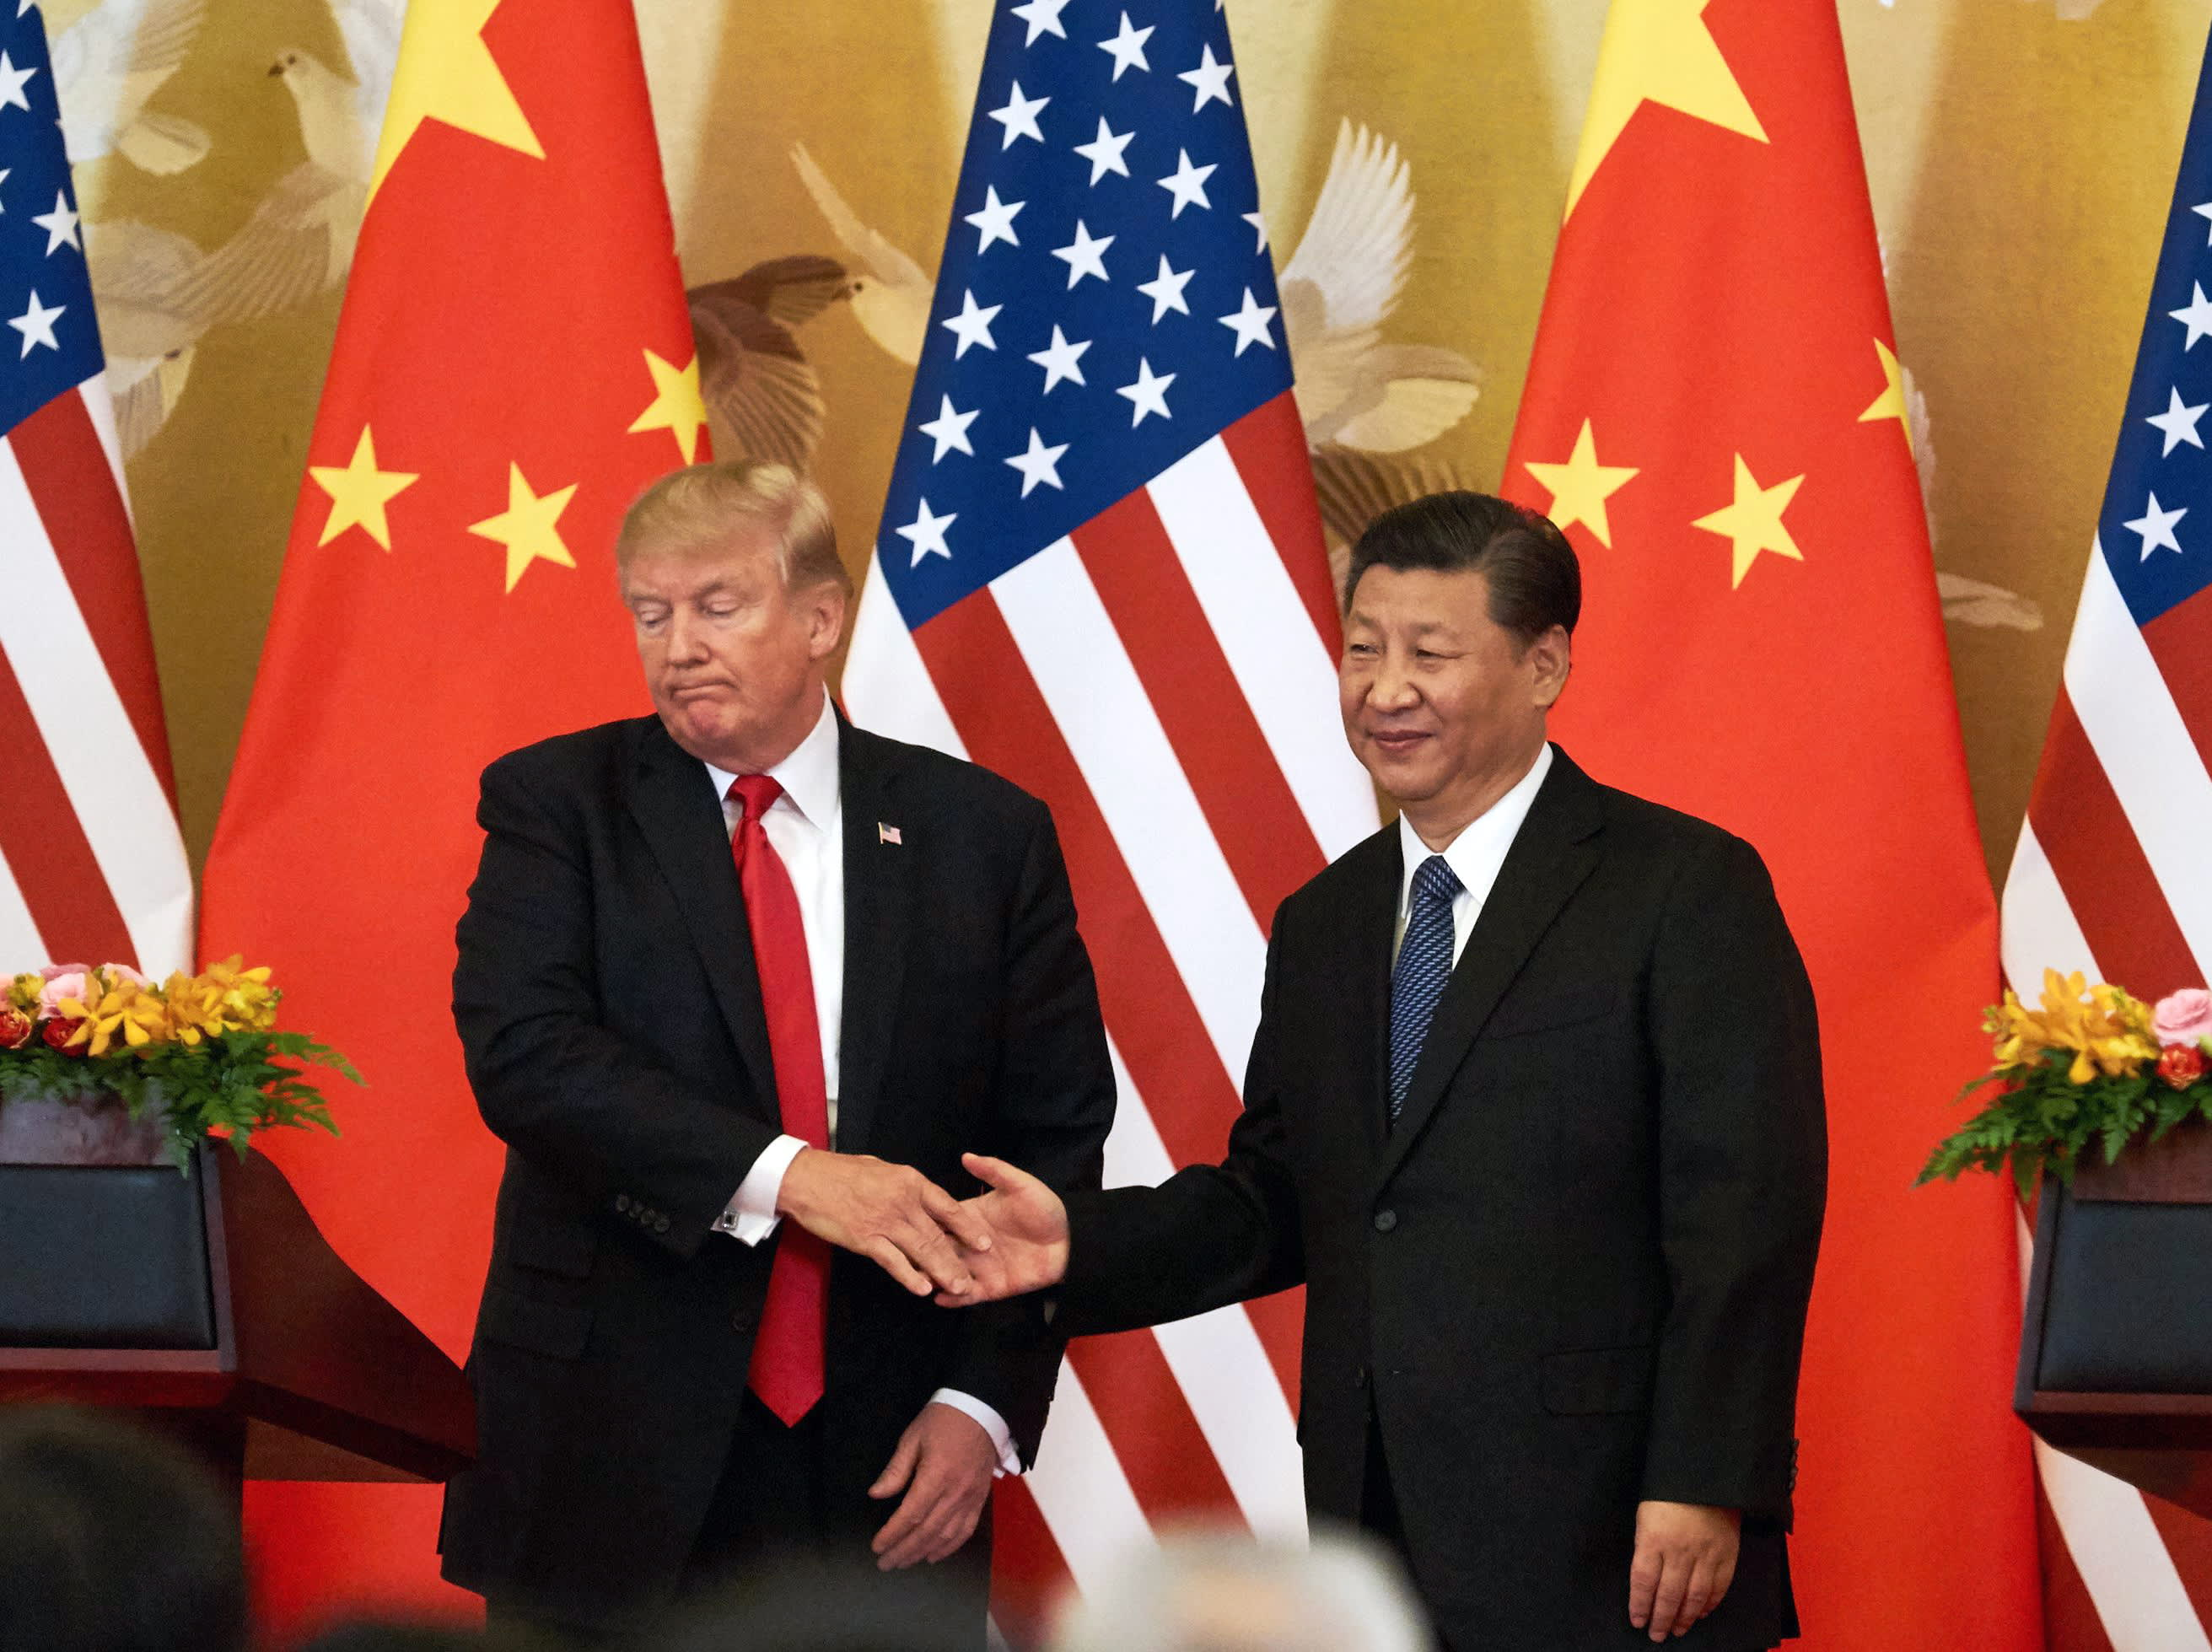 President Donald Trump and China's President Xi Jinping shake hands at a press conference following their meeting outside the Great Hall of the People in Beijing last November.